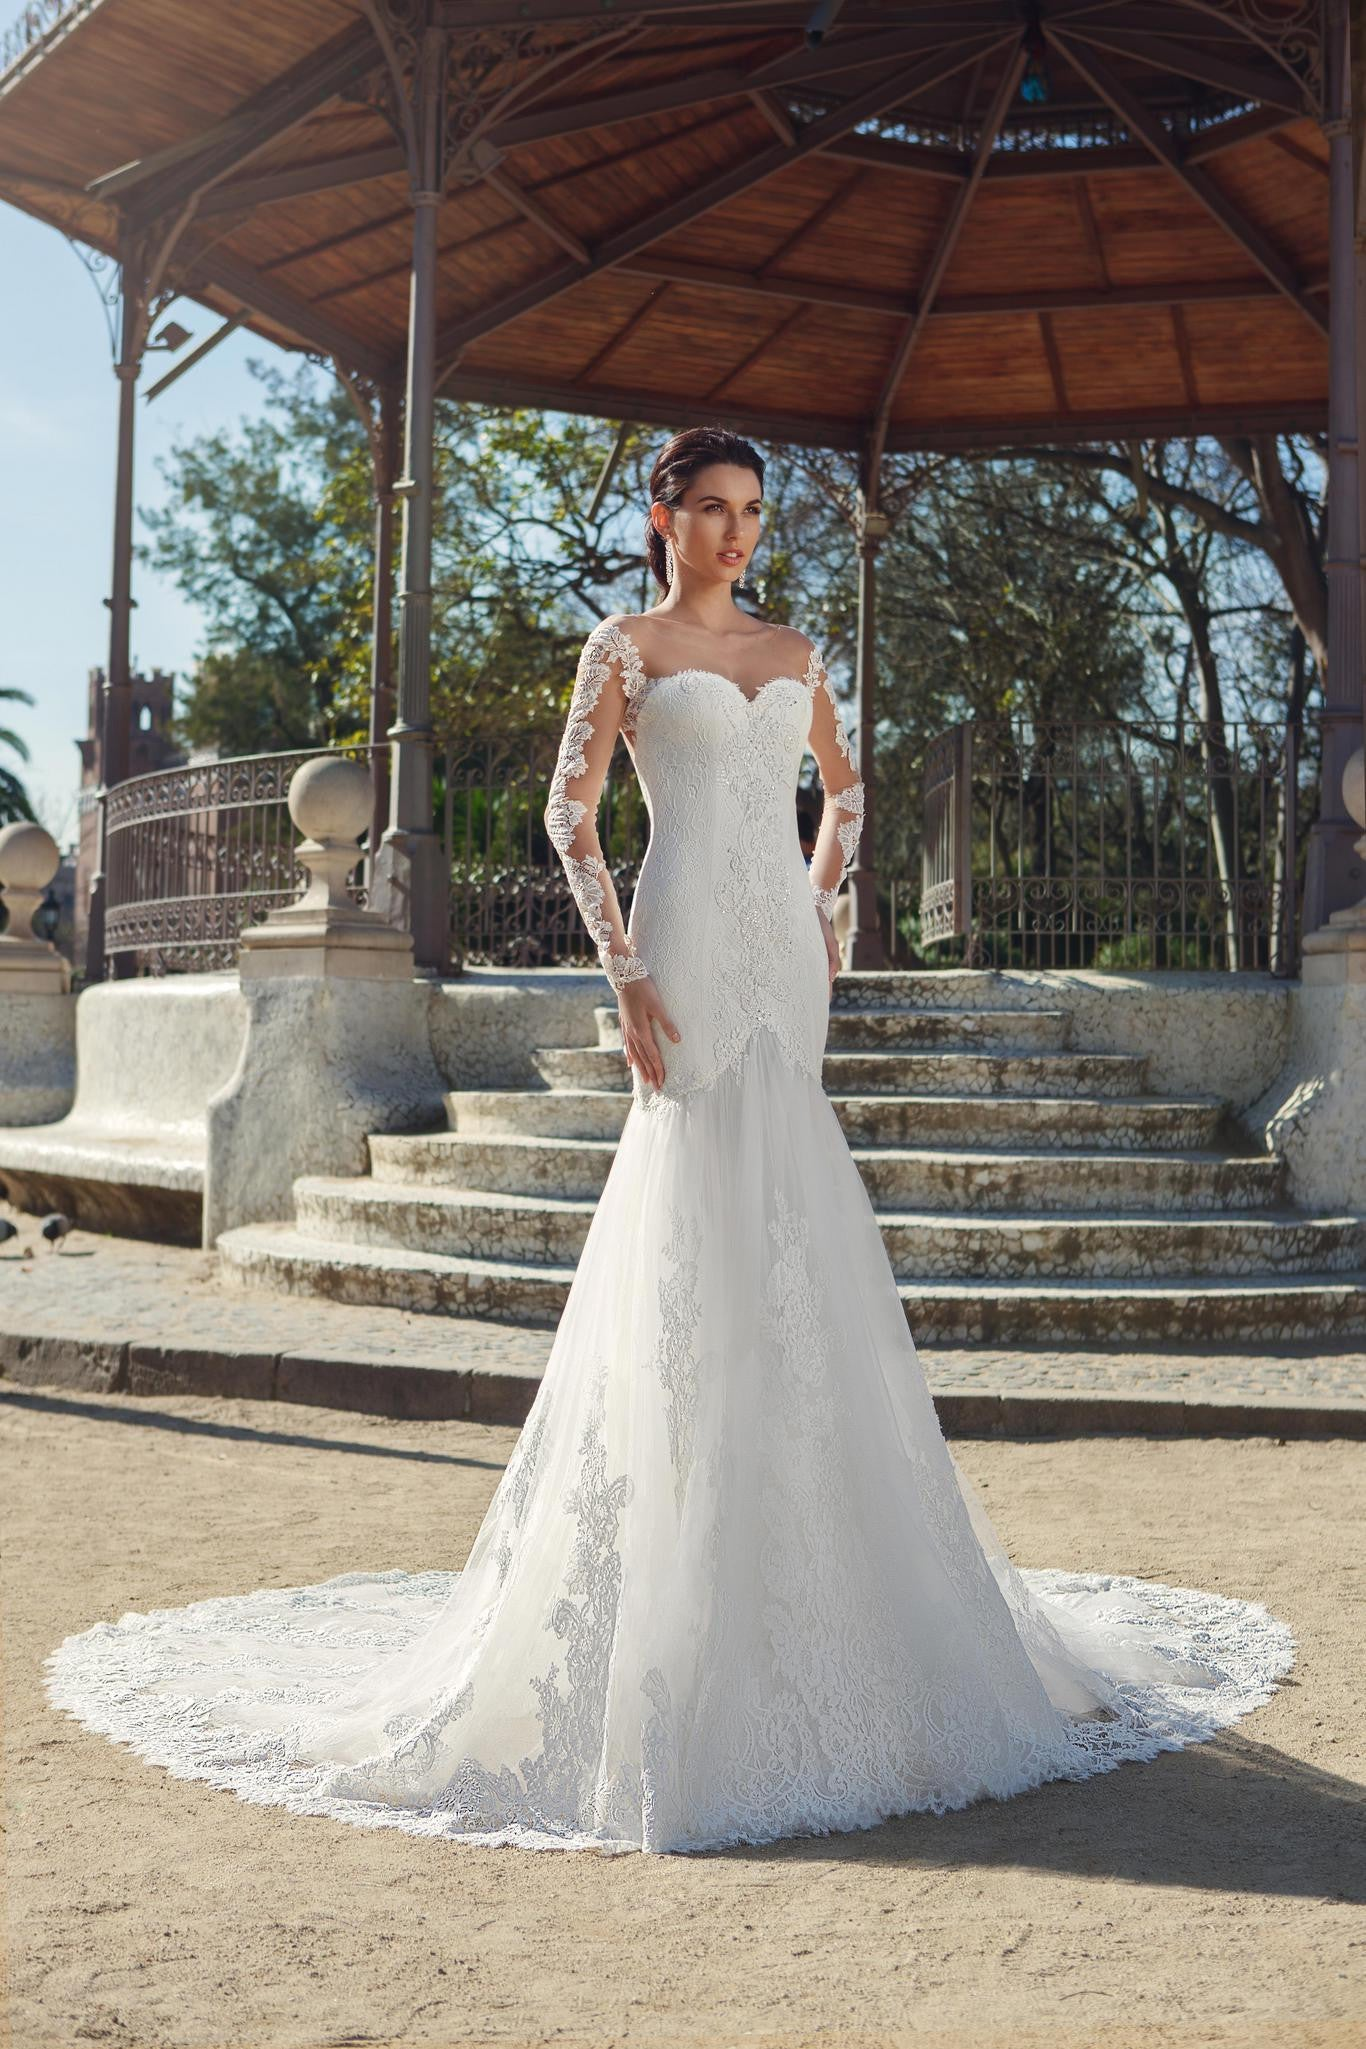 Beaded Lace Mermaid Wedding Dress with Illusion Details – The Magic ...